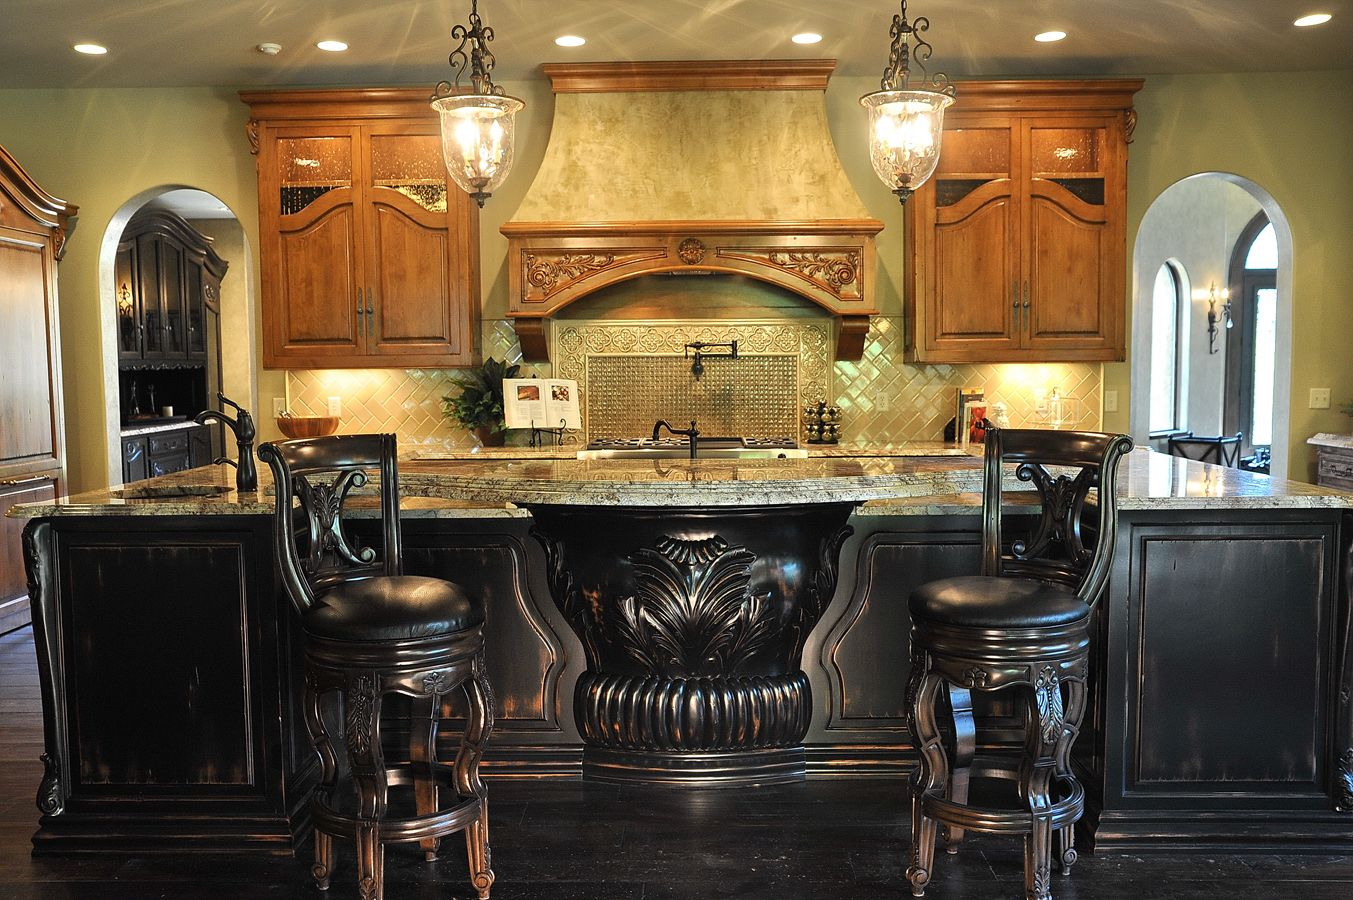 2011 Indianapolis Monthly Dream Home Kitchen by Chateau